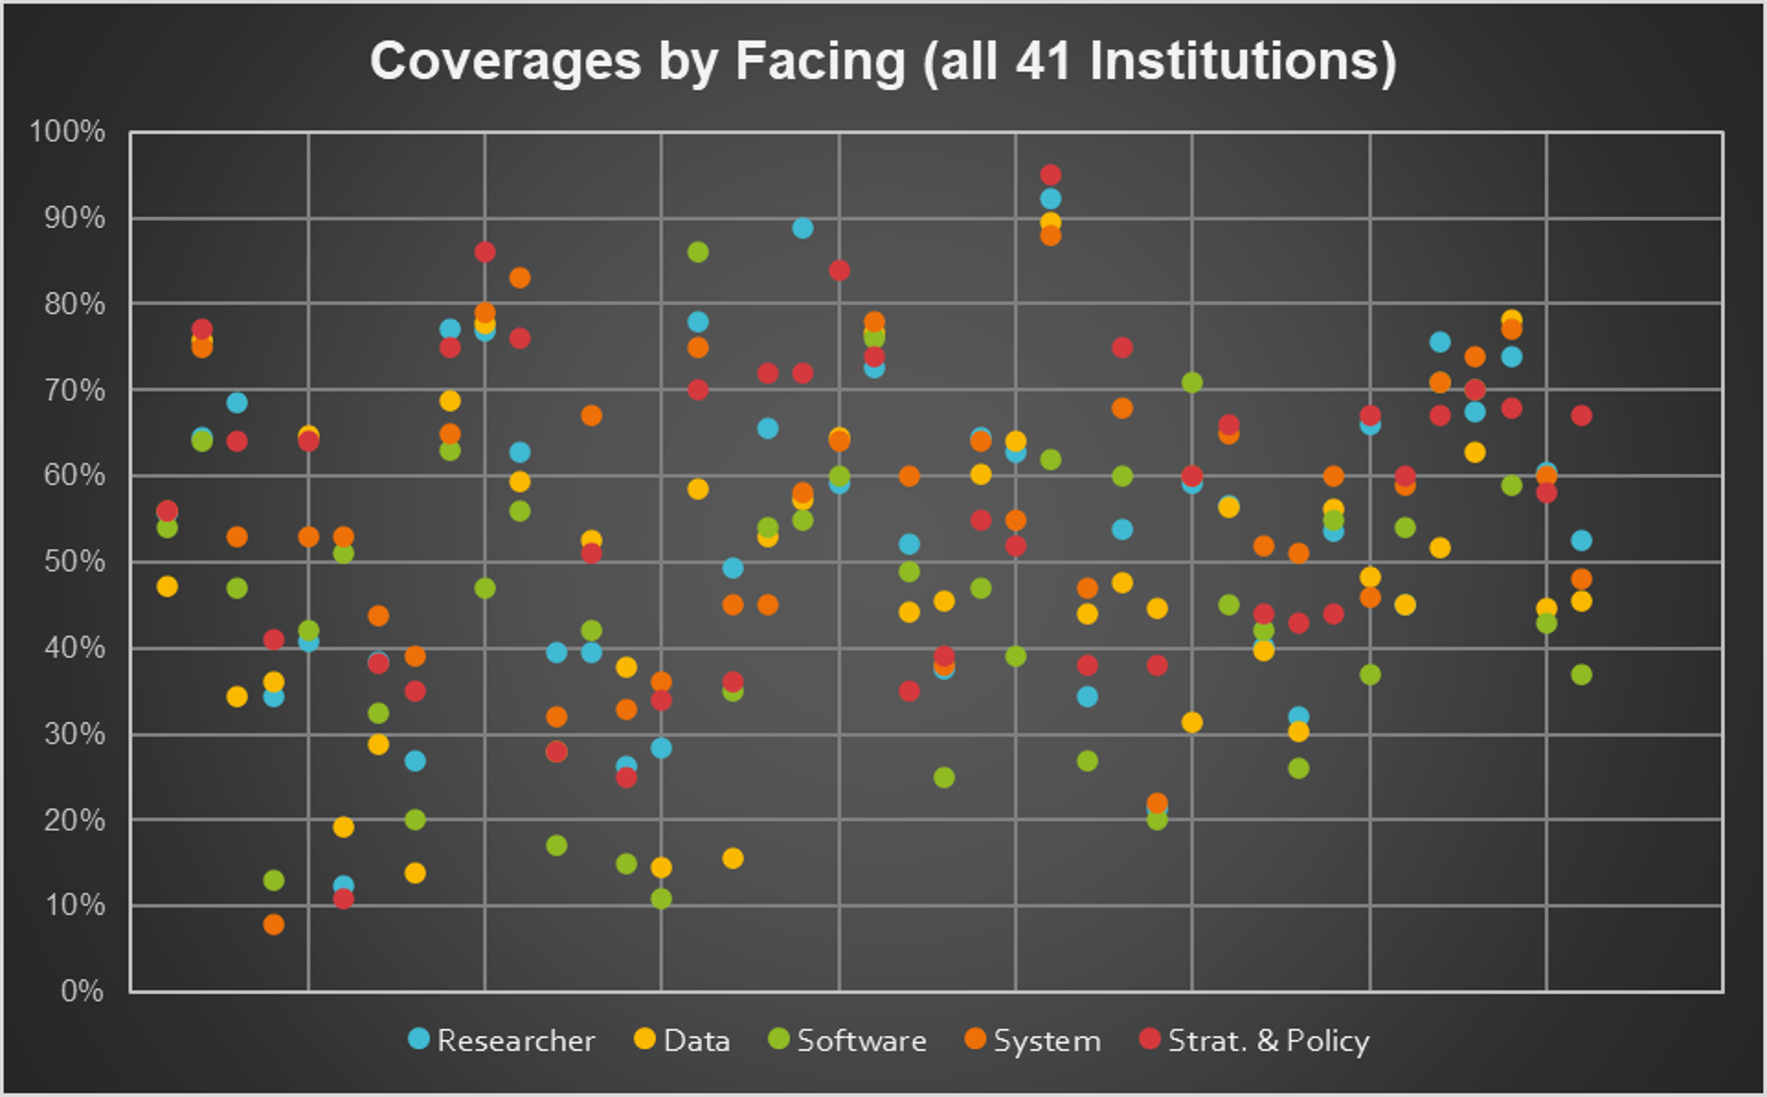 Scatter Plot showing the capabilities coverage for all 41 institutions